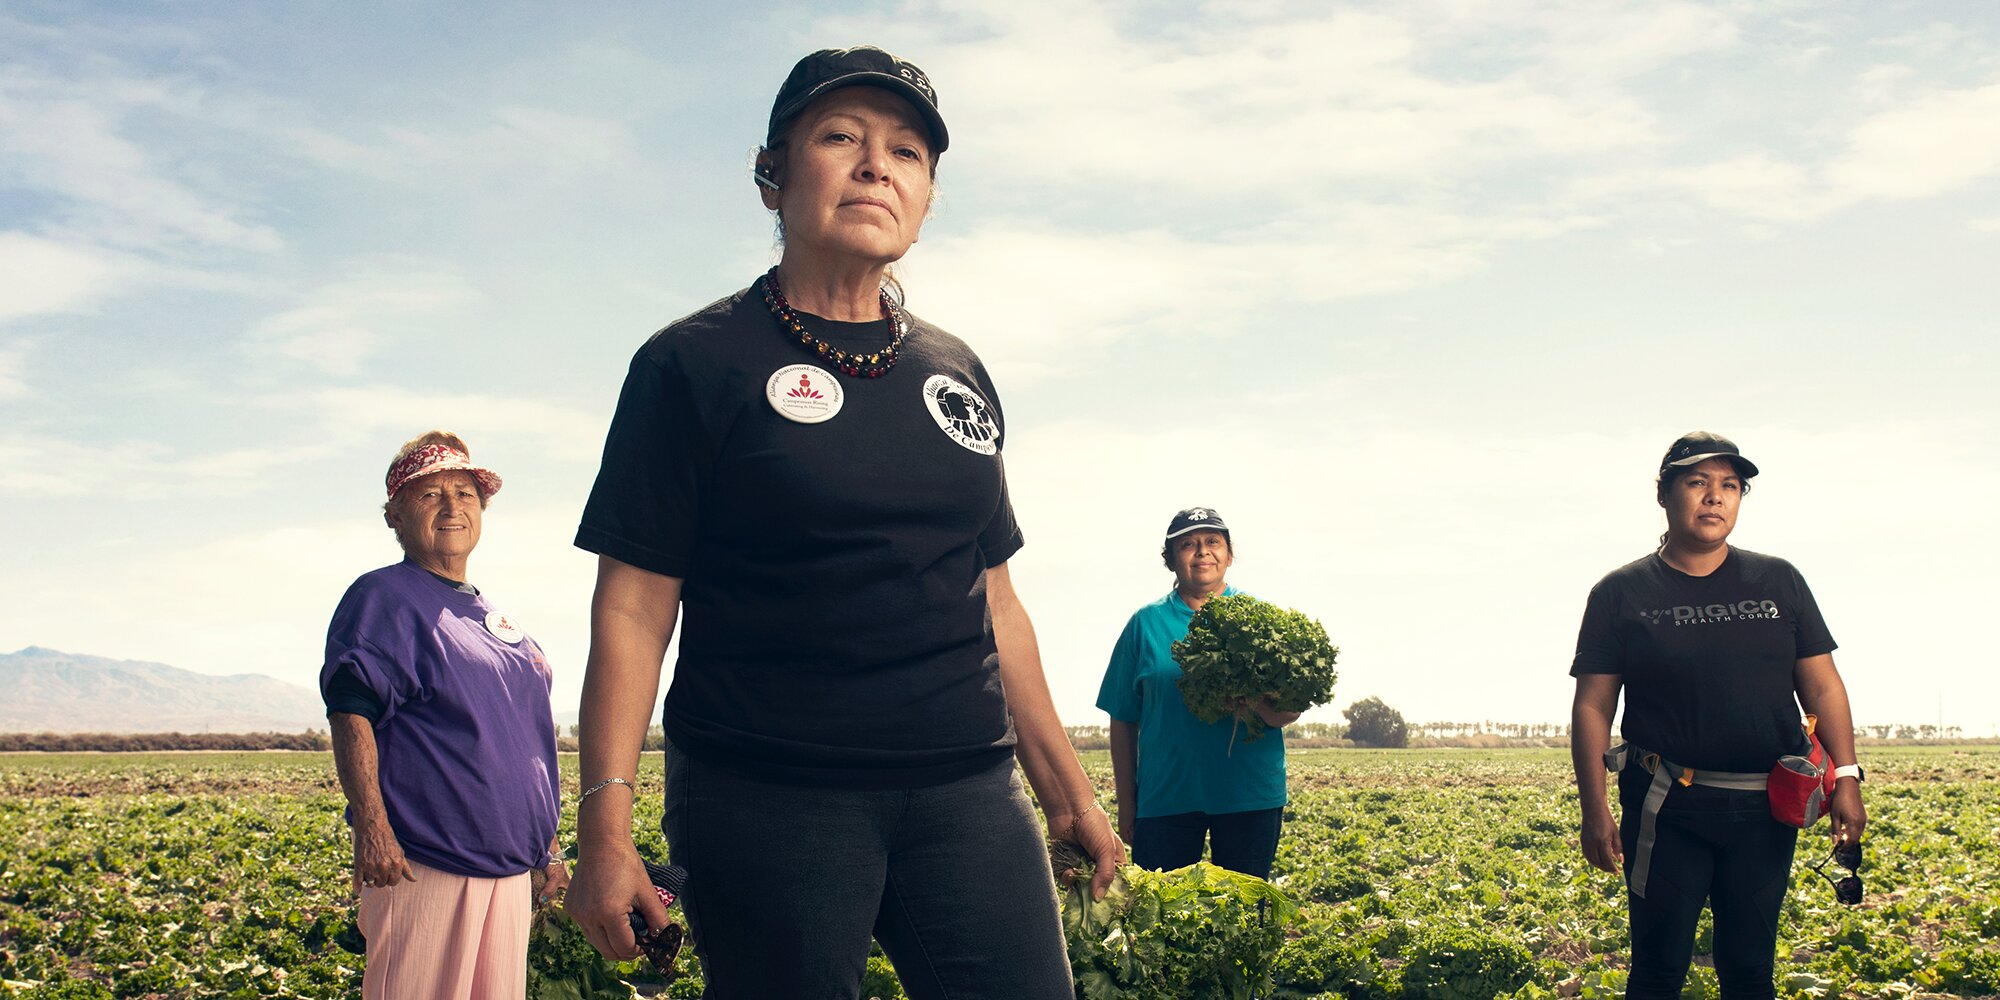 How One Woman Is Advocating for the Health, Safety & Rights of Migrant Farm Workers